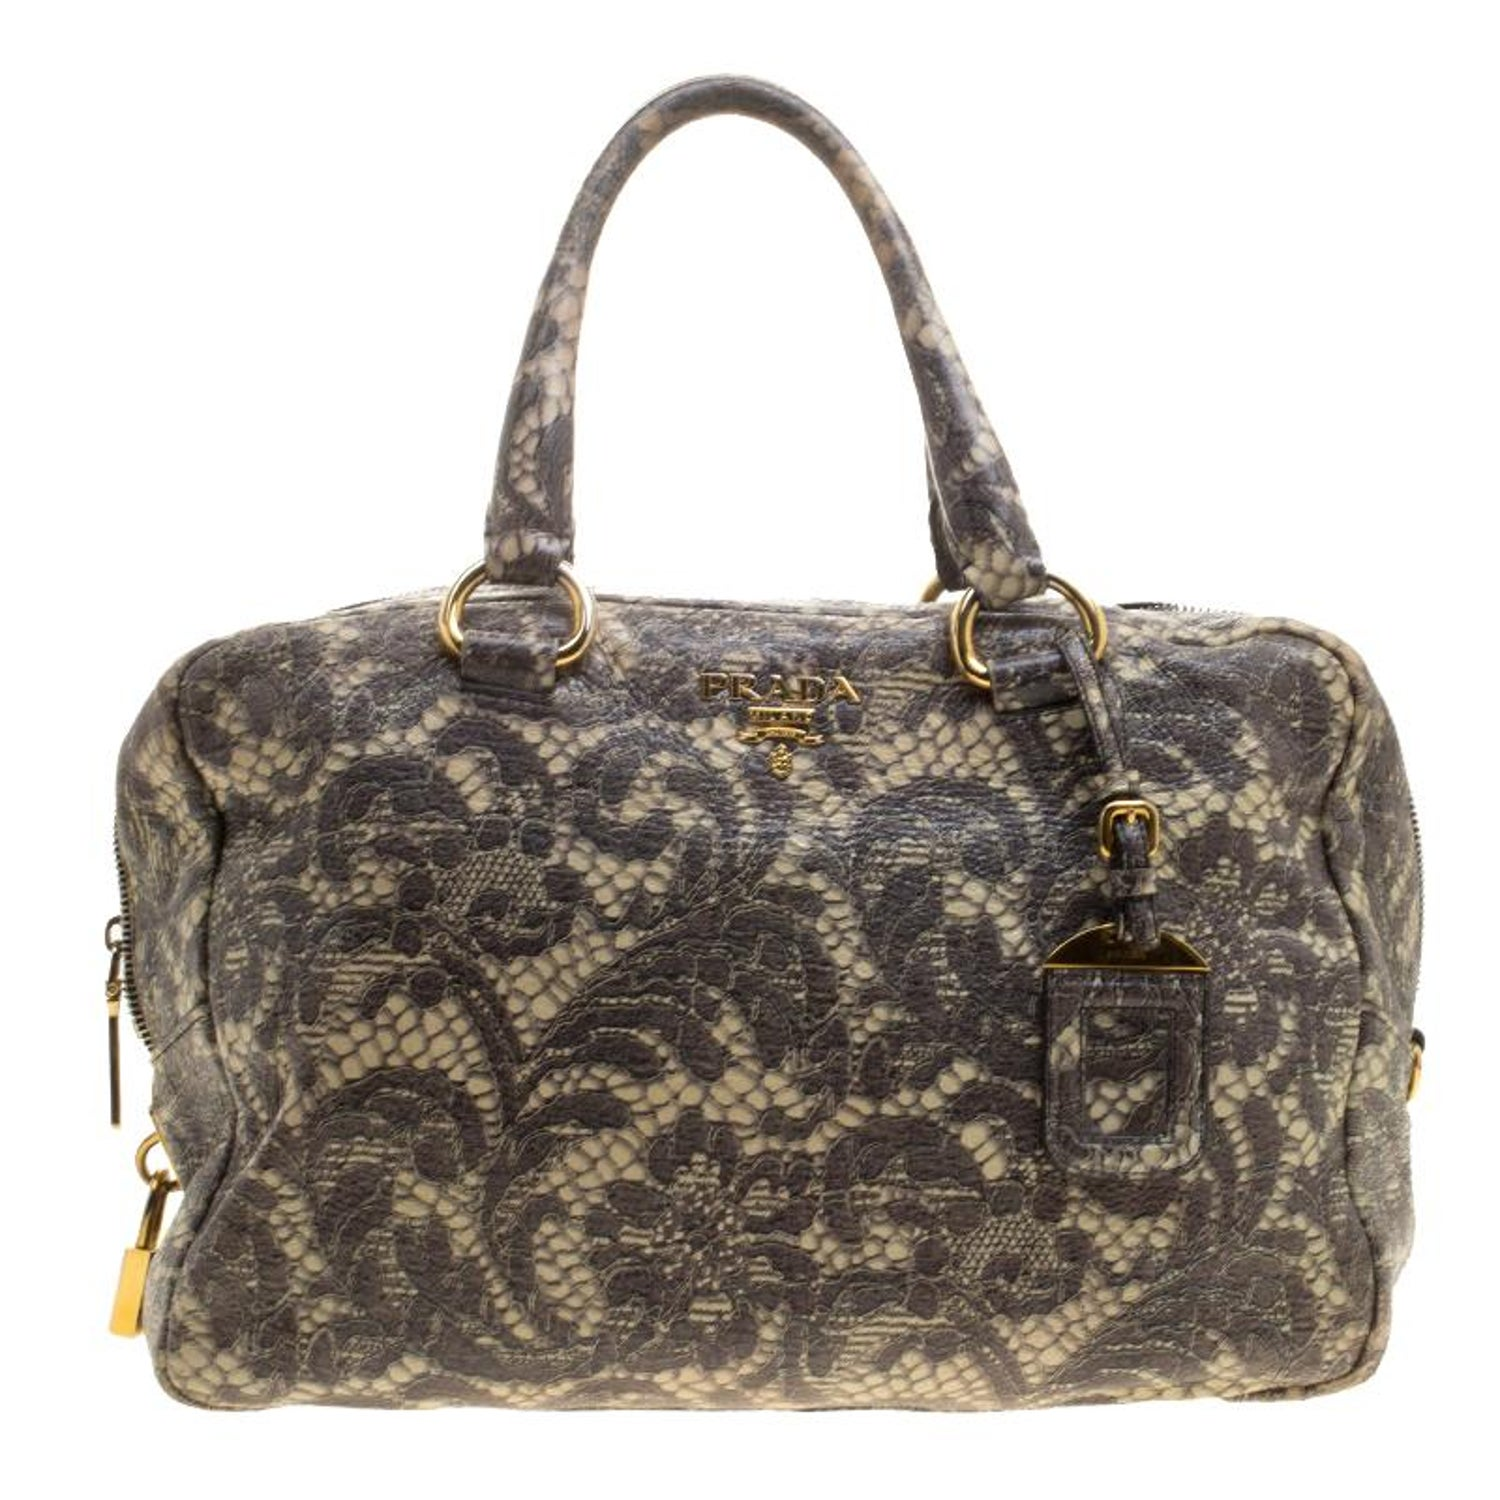 c6bfba2225ff Prada Beige Talco Lace Print Cervo Leather Bowling Bag For Sale at 1stdibs